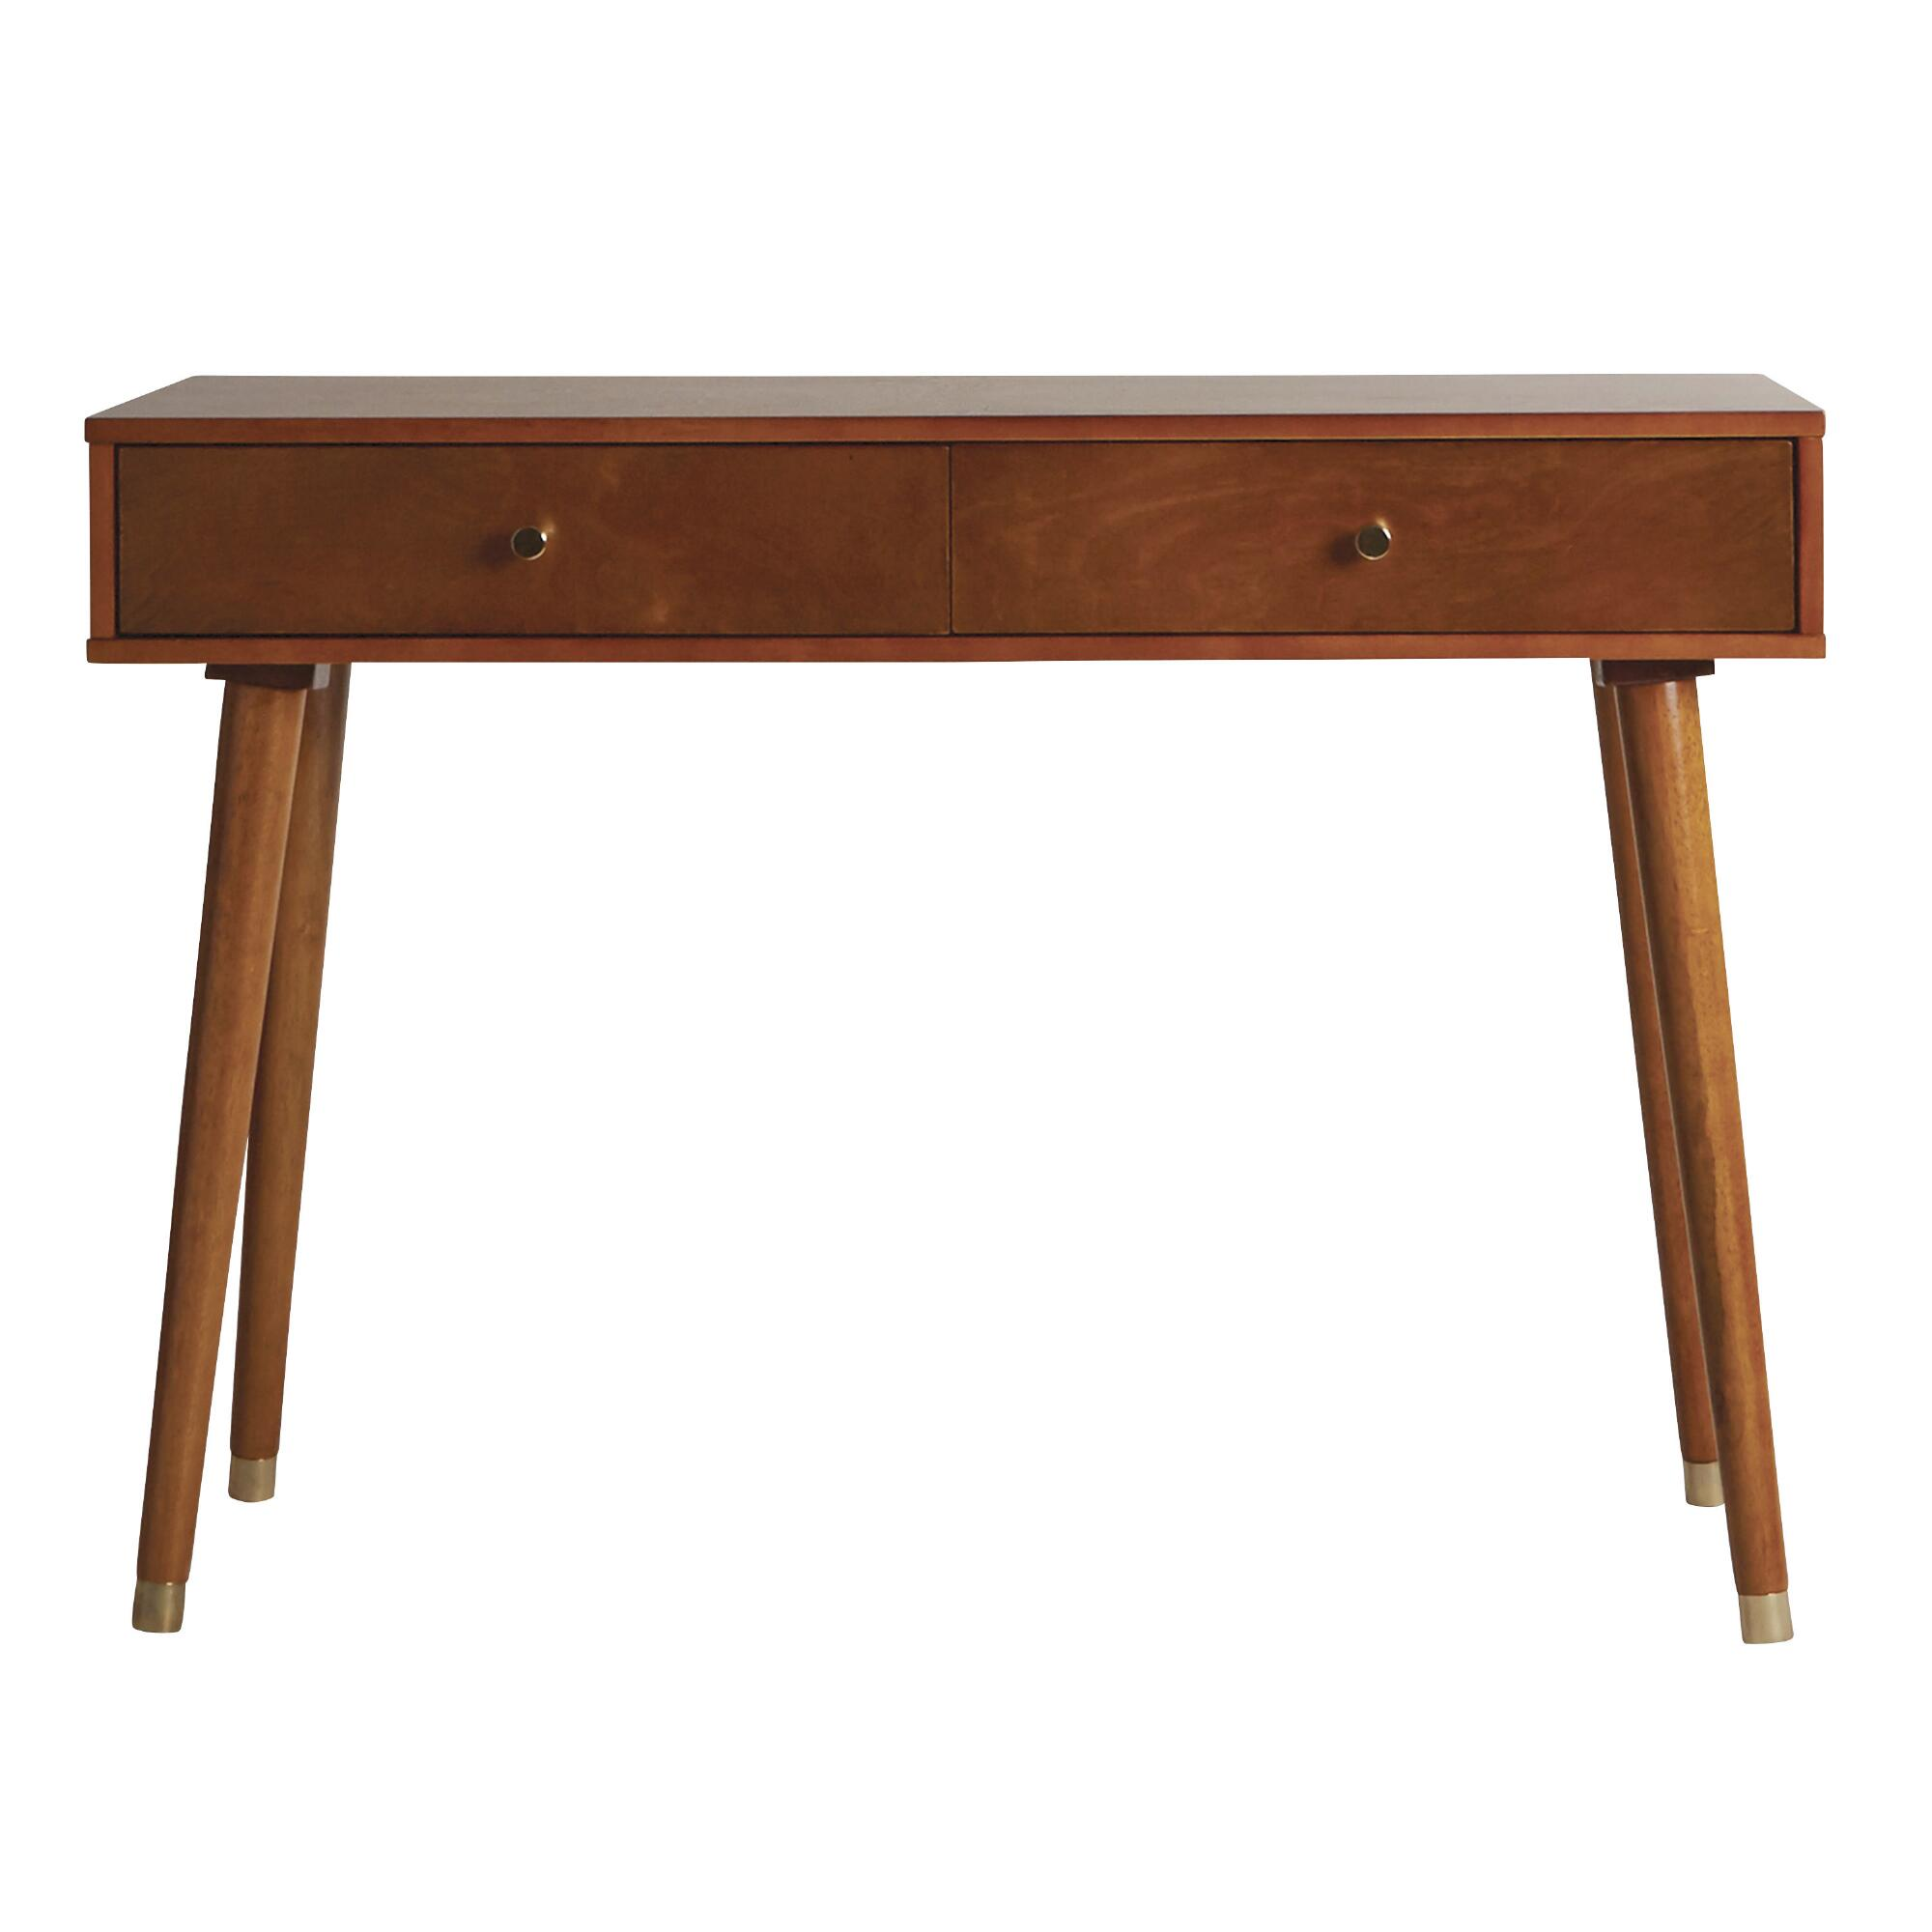 Light walnut wood caleb console table world market